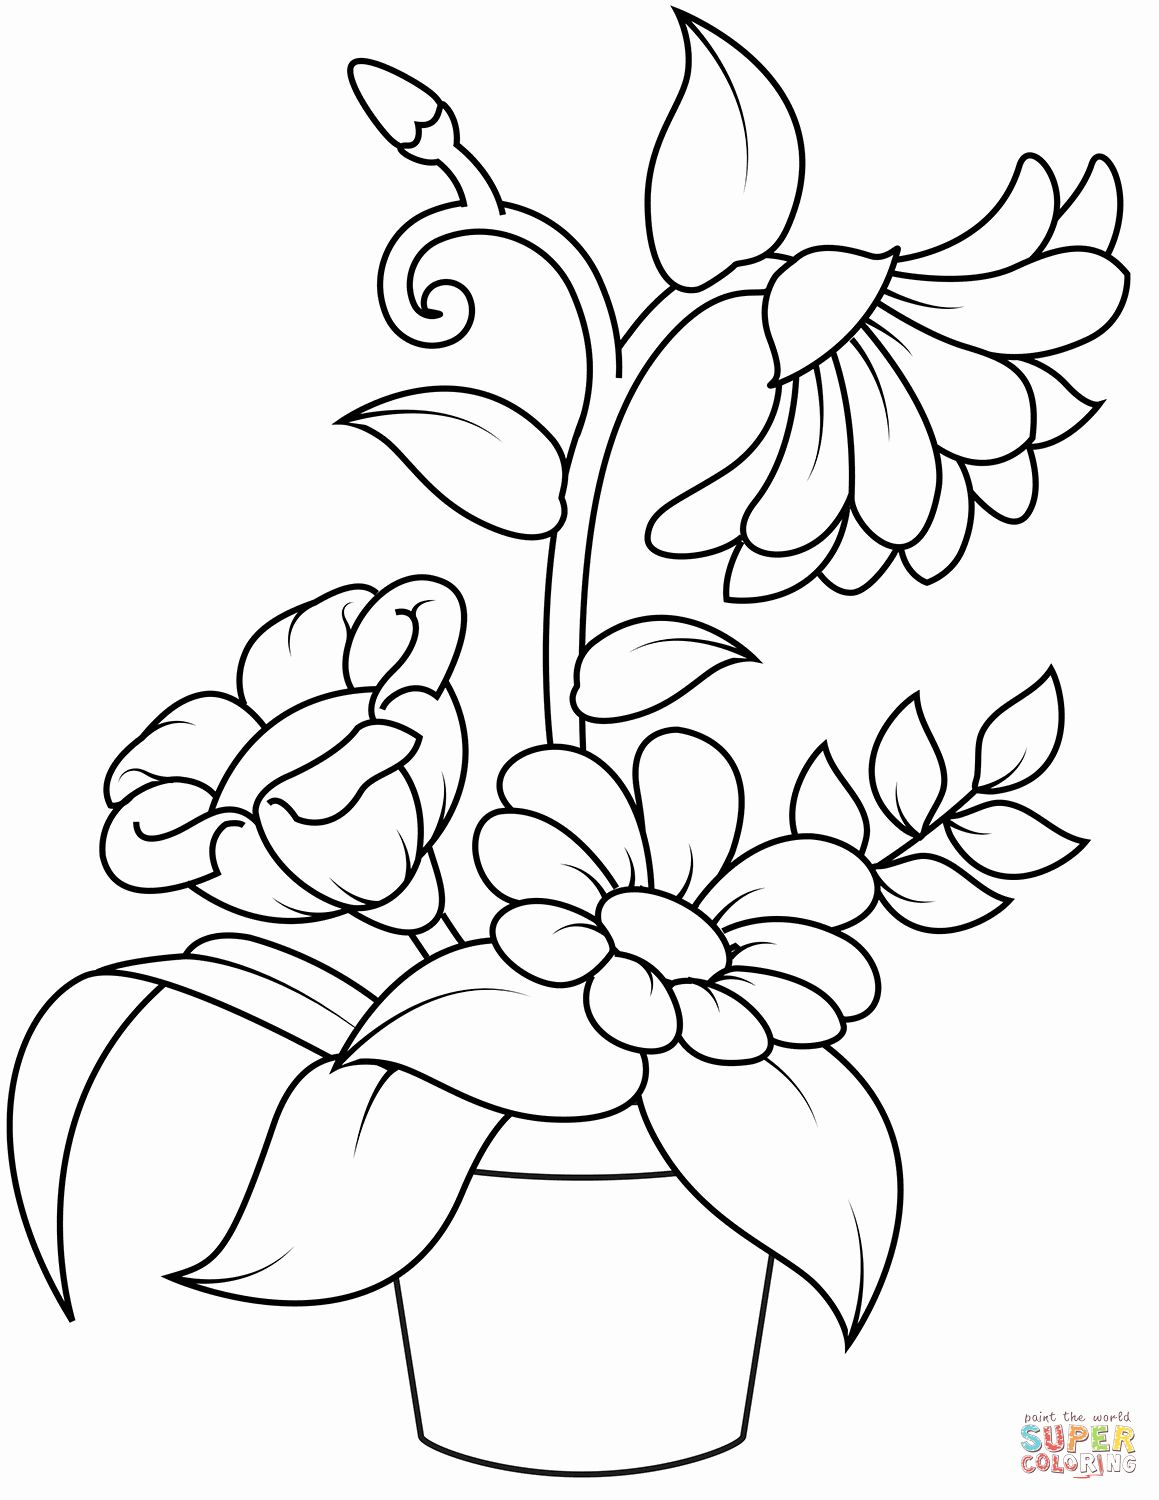 Free Printable Coloring Pages Flowers In 2020 Flower Coloring